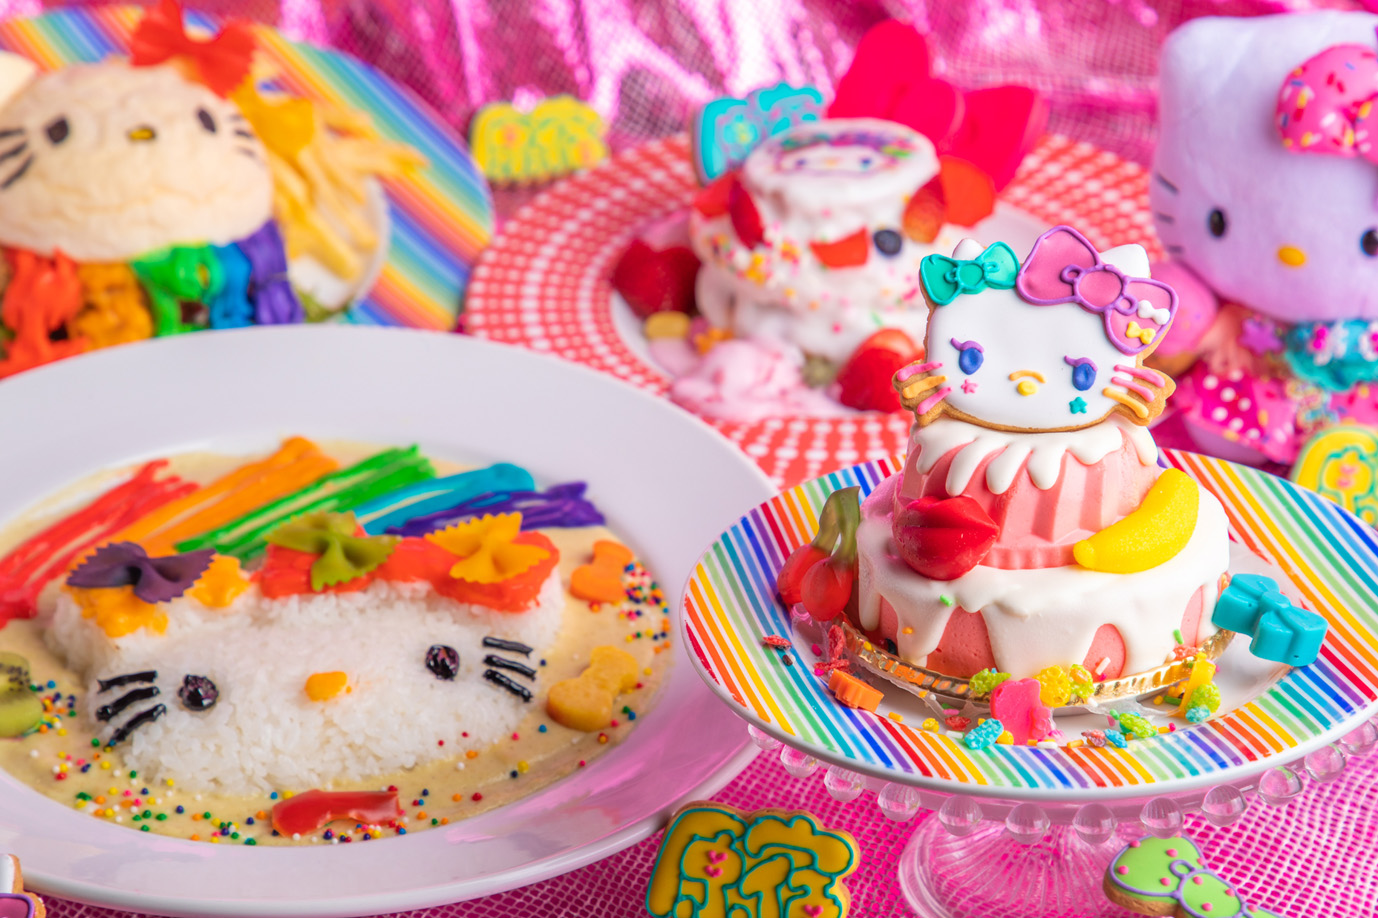 KAWAII MONSTER CAFE × ハローキティ🎀KAWAIIコラボ💘